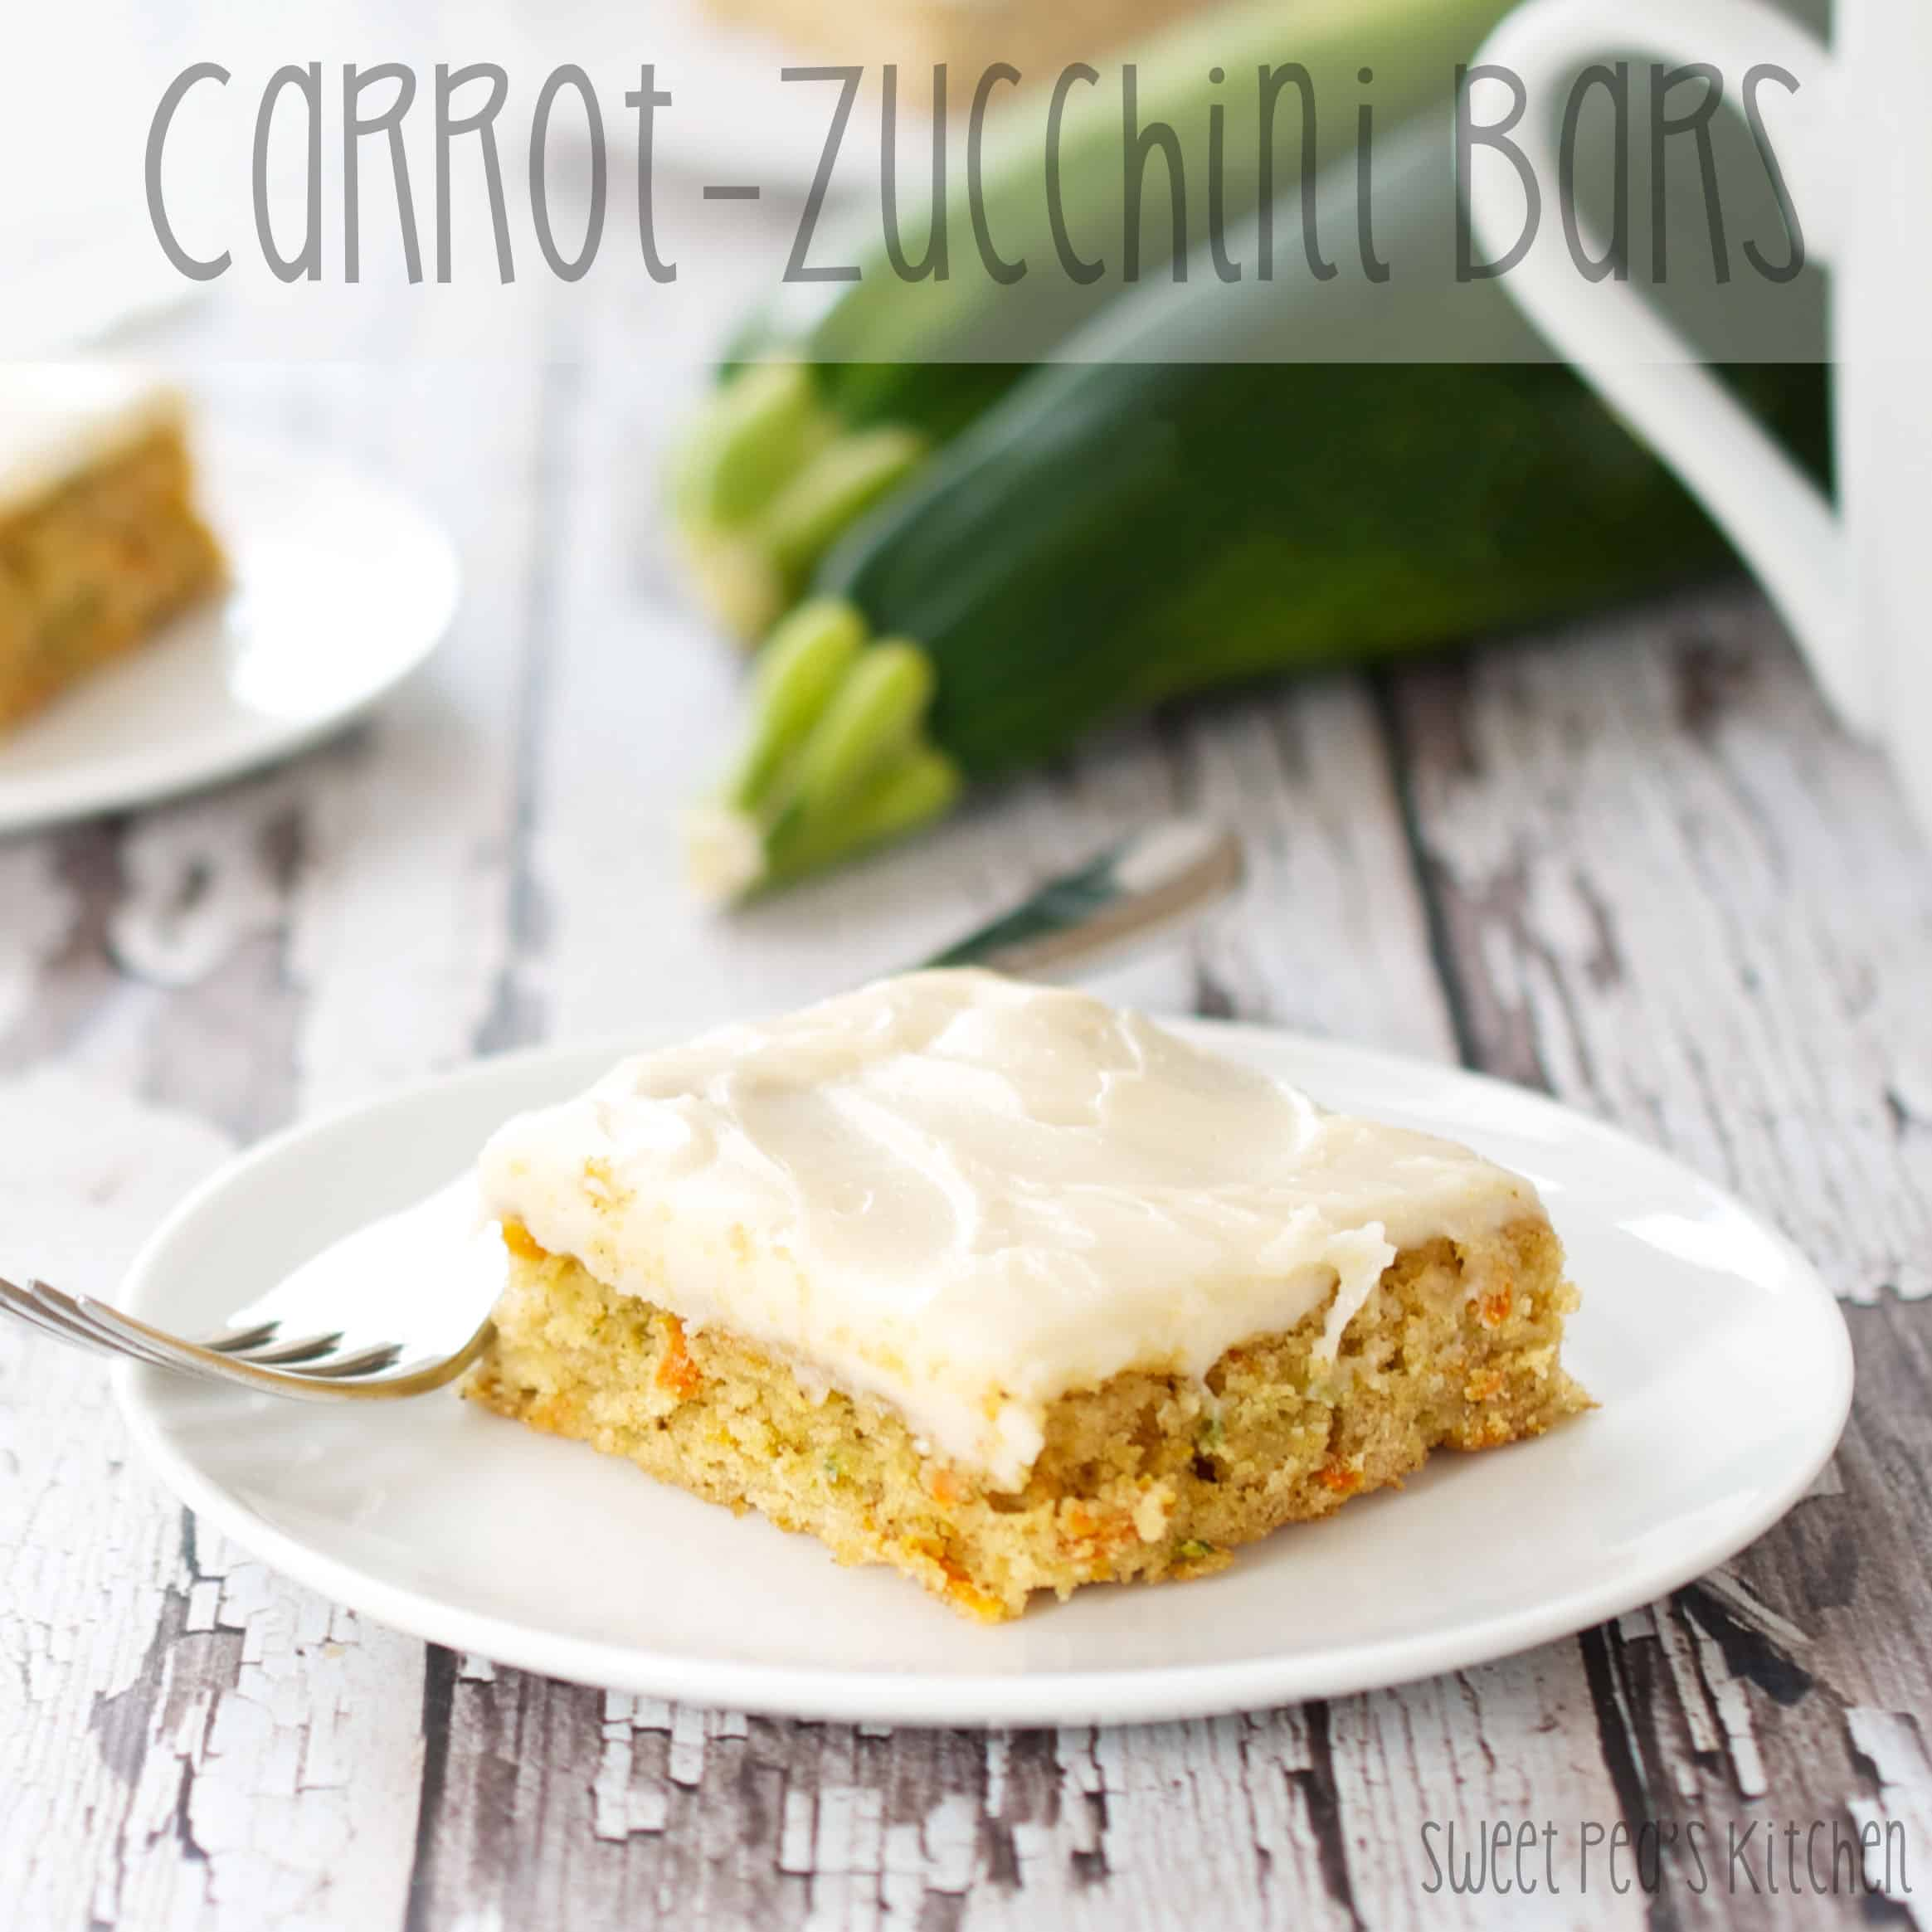 Carrot-Zucchini Bars with Cream Cheese Frosting